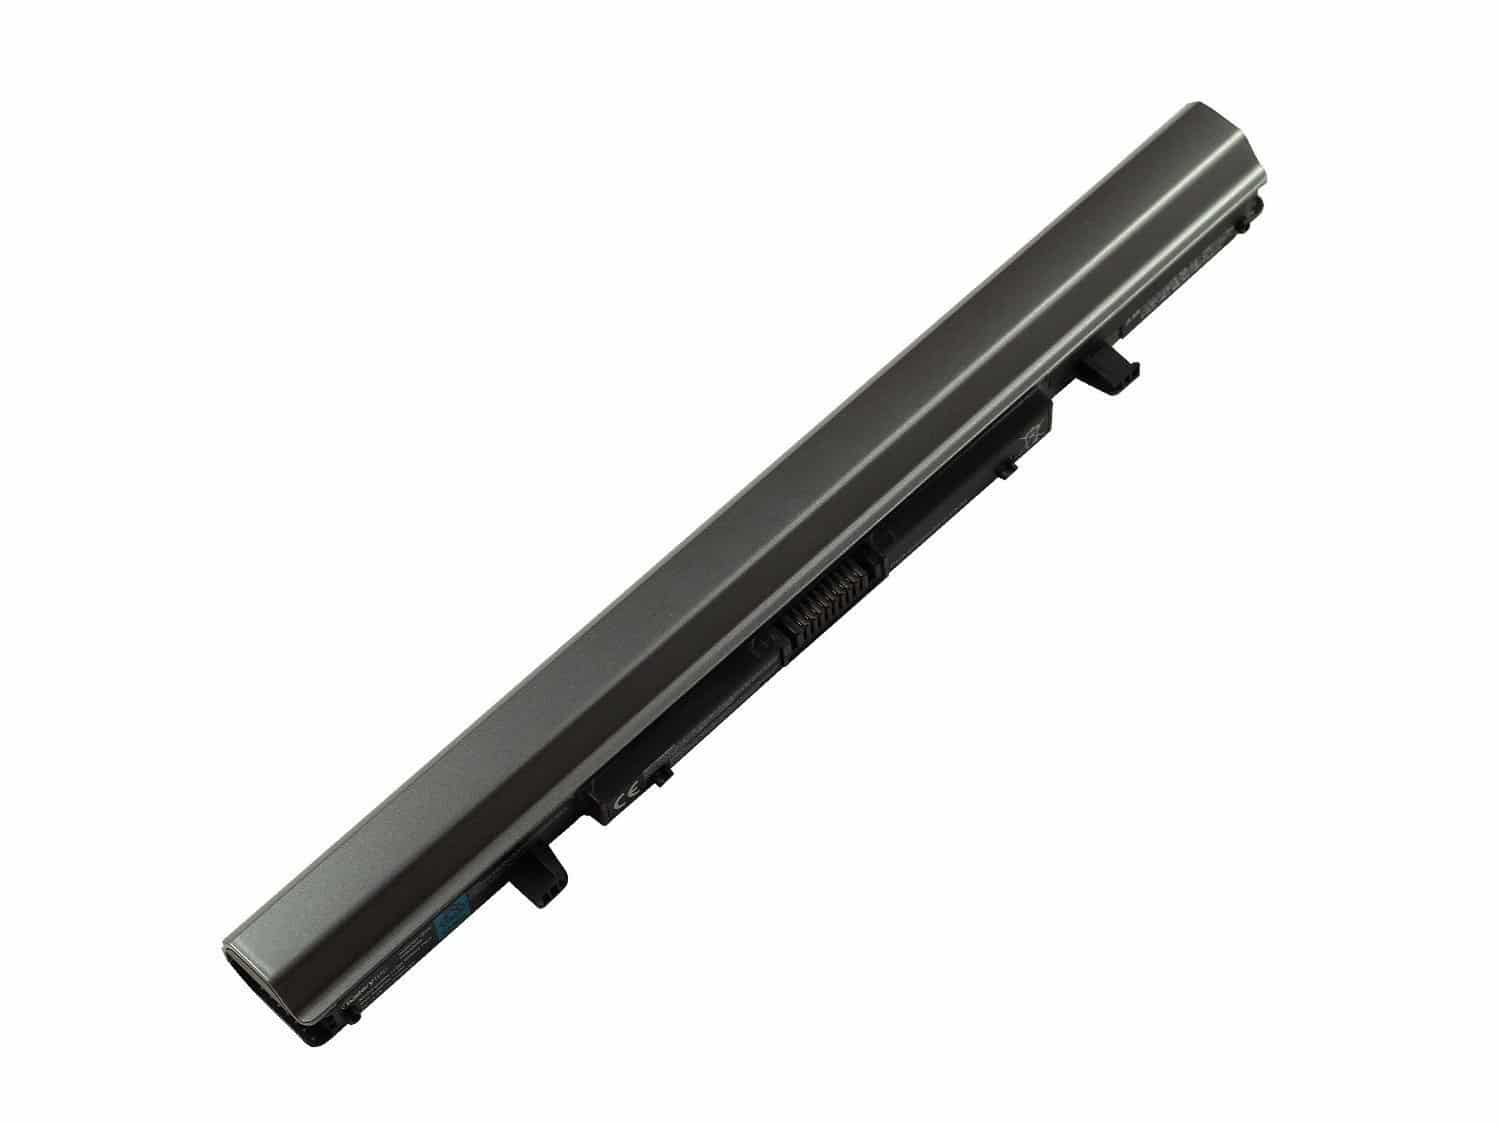 Replacement Battery for Toshiba PA5076, PA5076R-1BRS, PA5076U-1BRS, PA5077U-1BRS, PABAS268, PABAS269